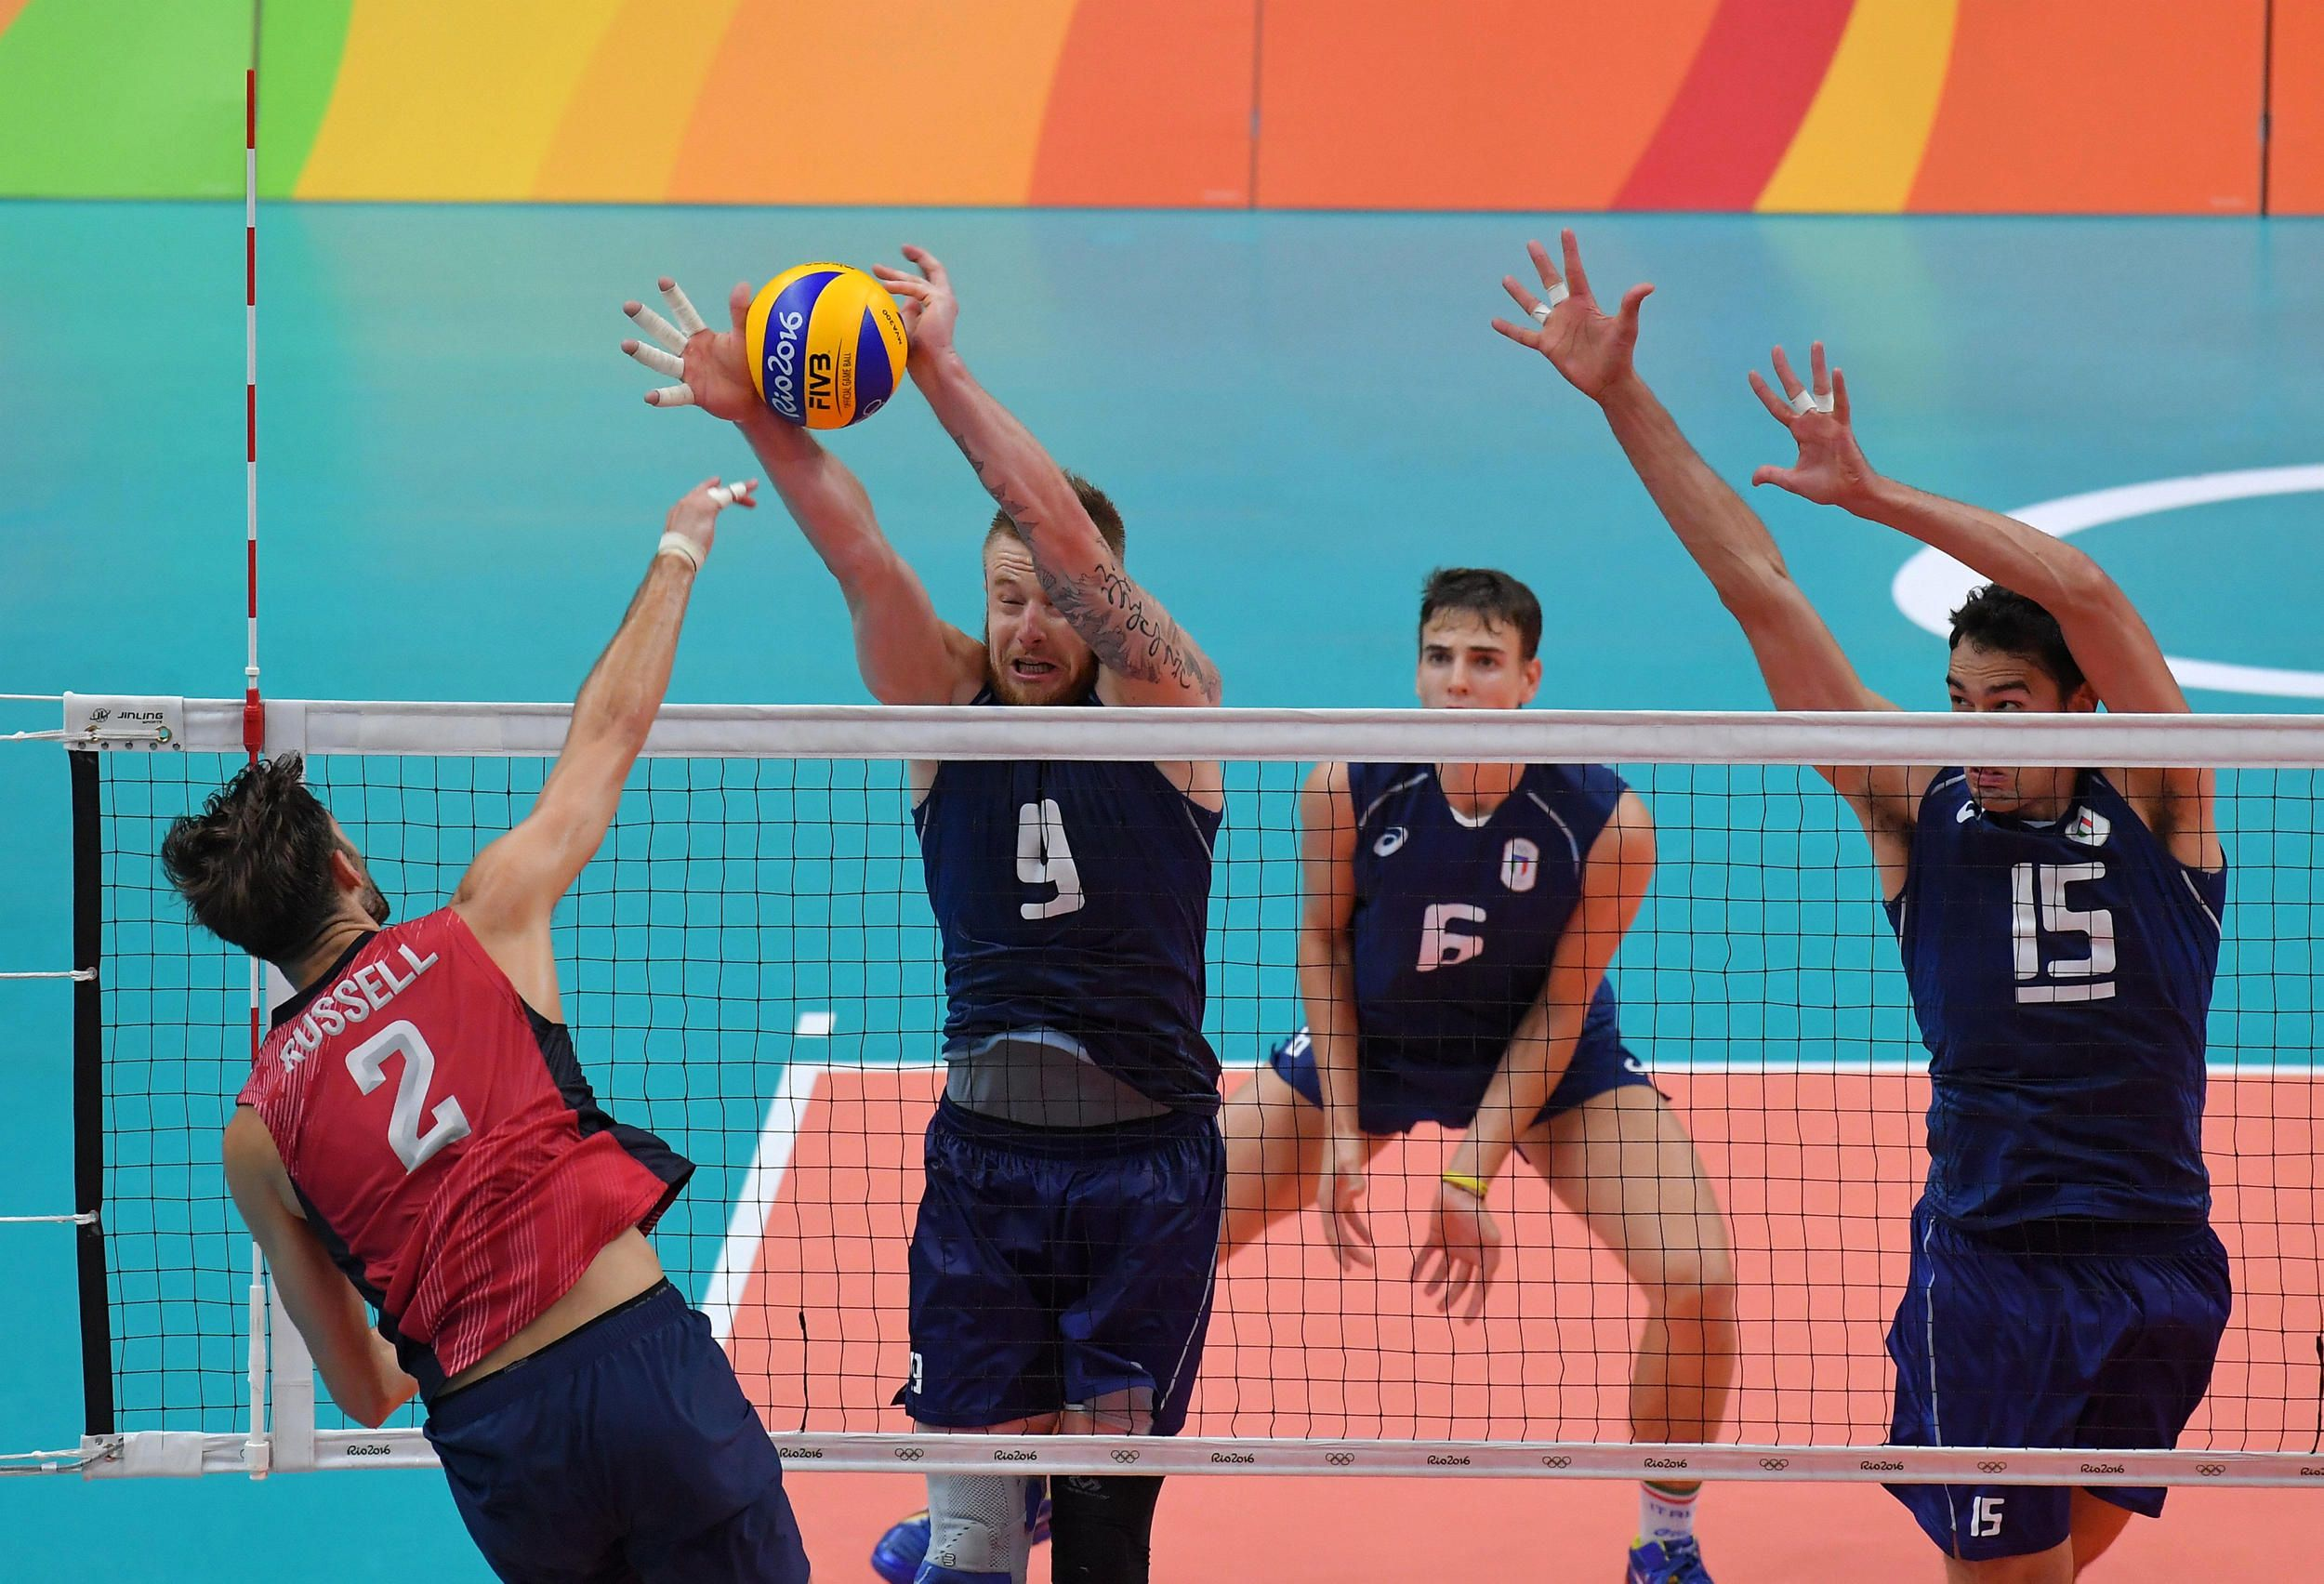 Ivan Zaytsev S Monster Block Against Aaron Russell S Spike In 2020 Volleyball Volley Basketball Court